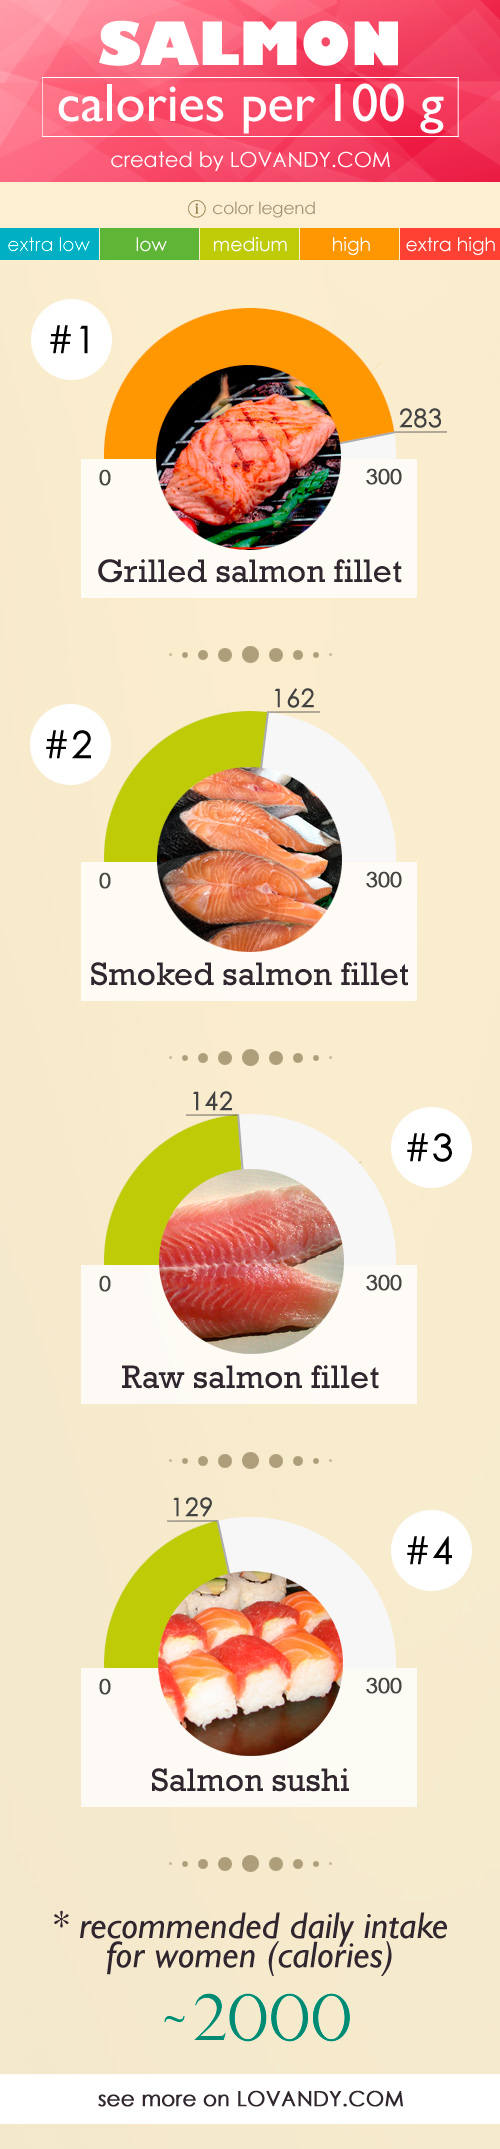 calorie chart for salmon fillet per 100 g